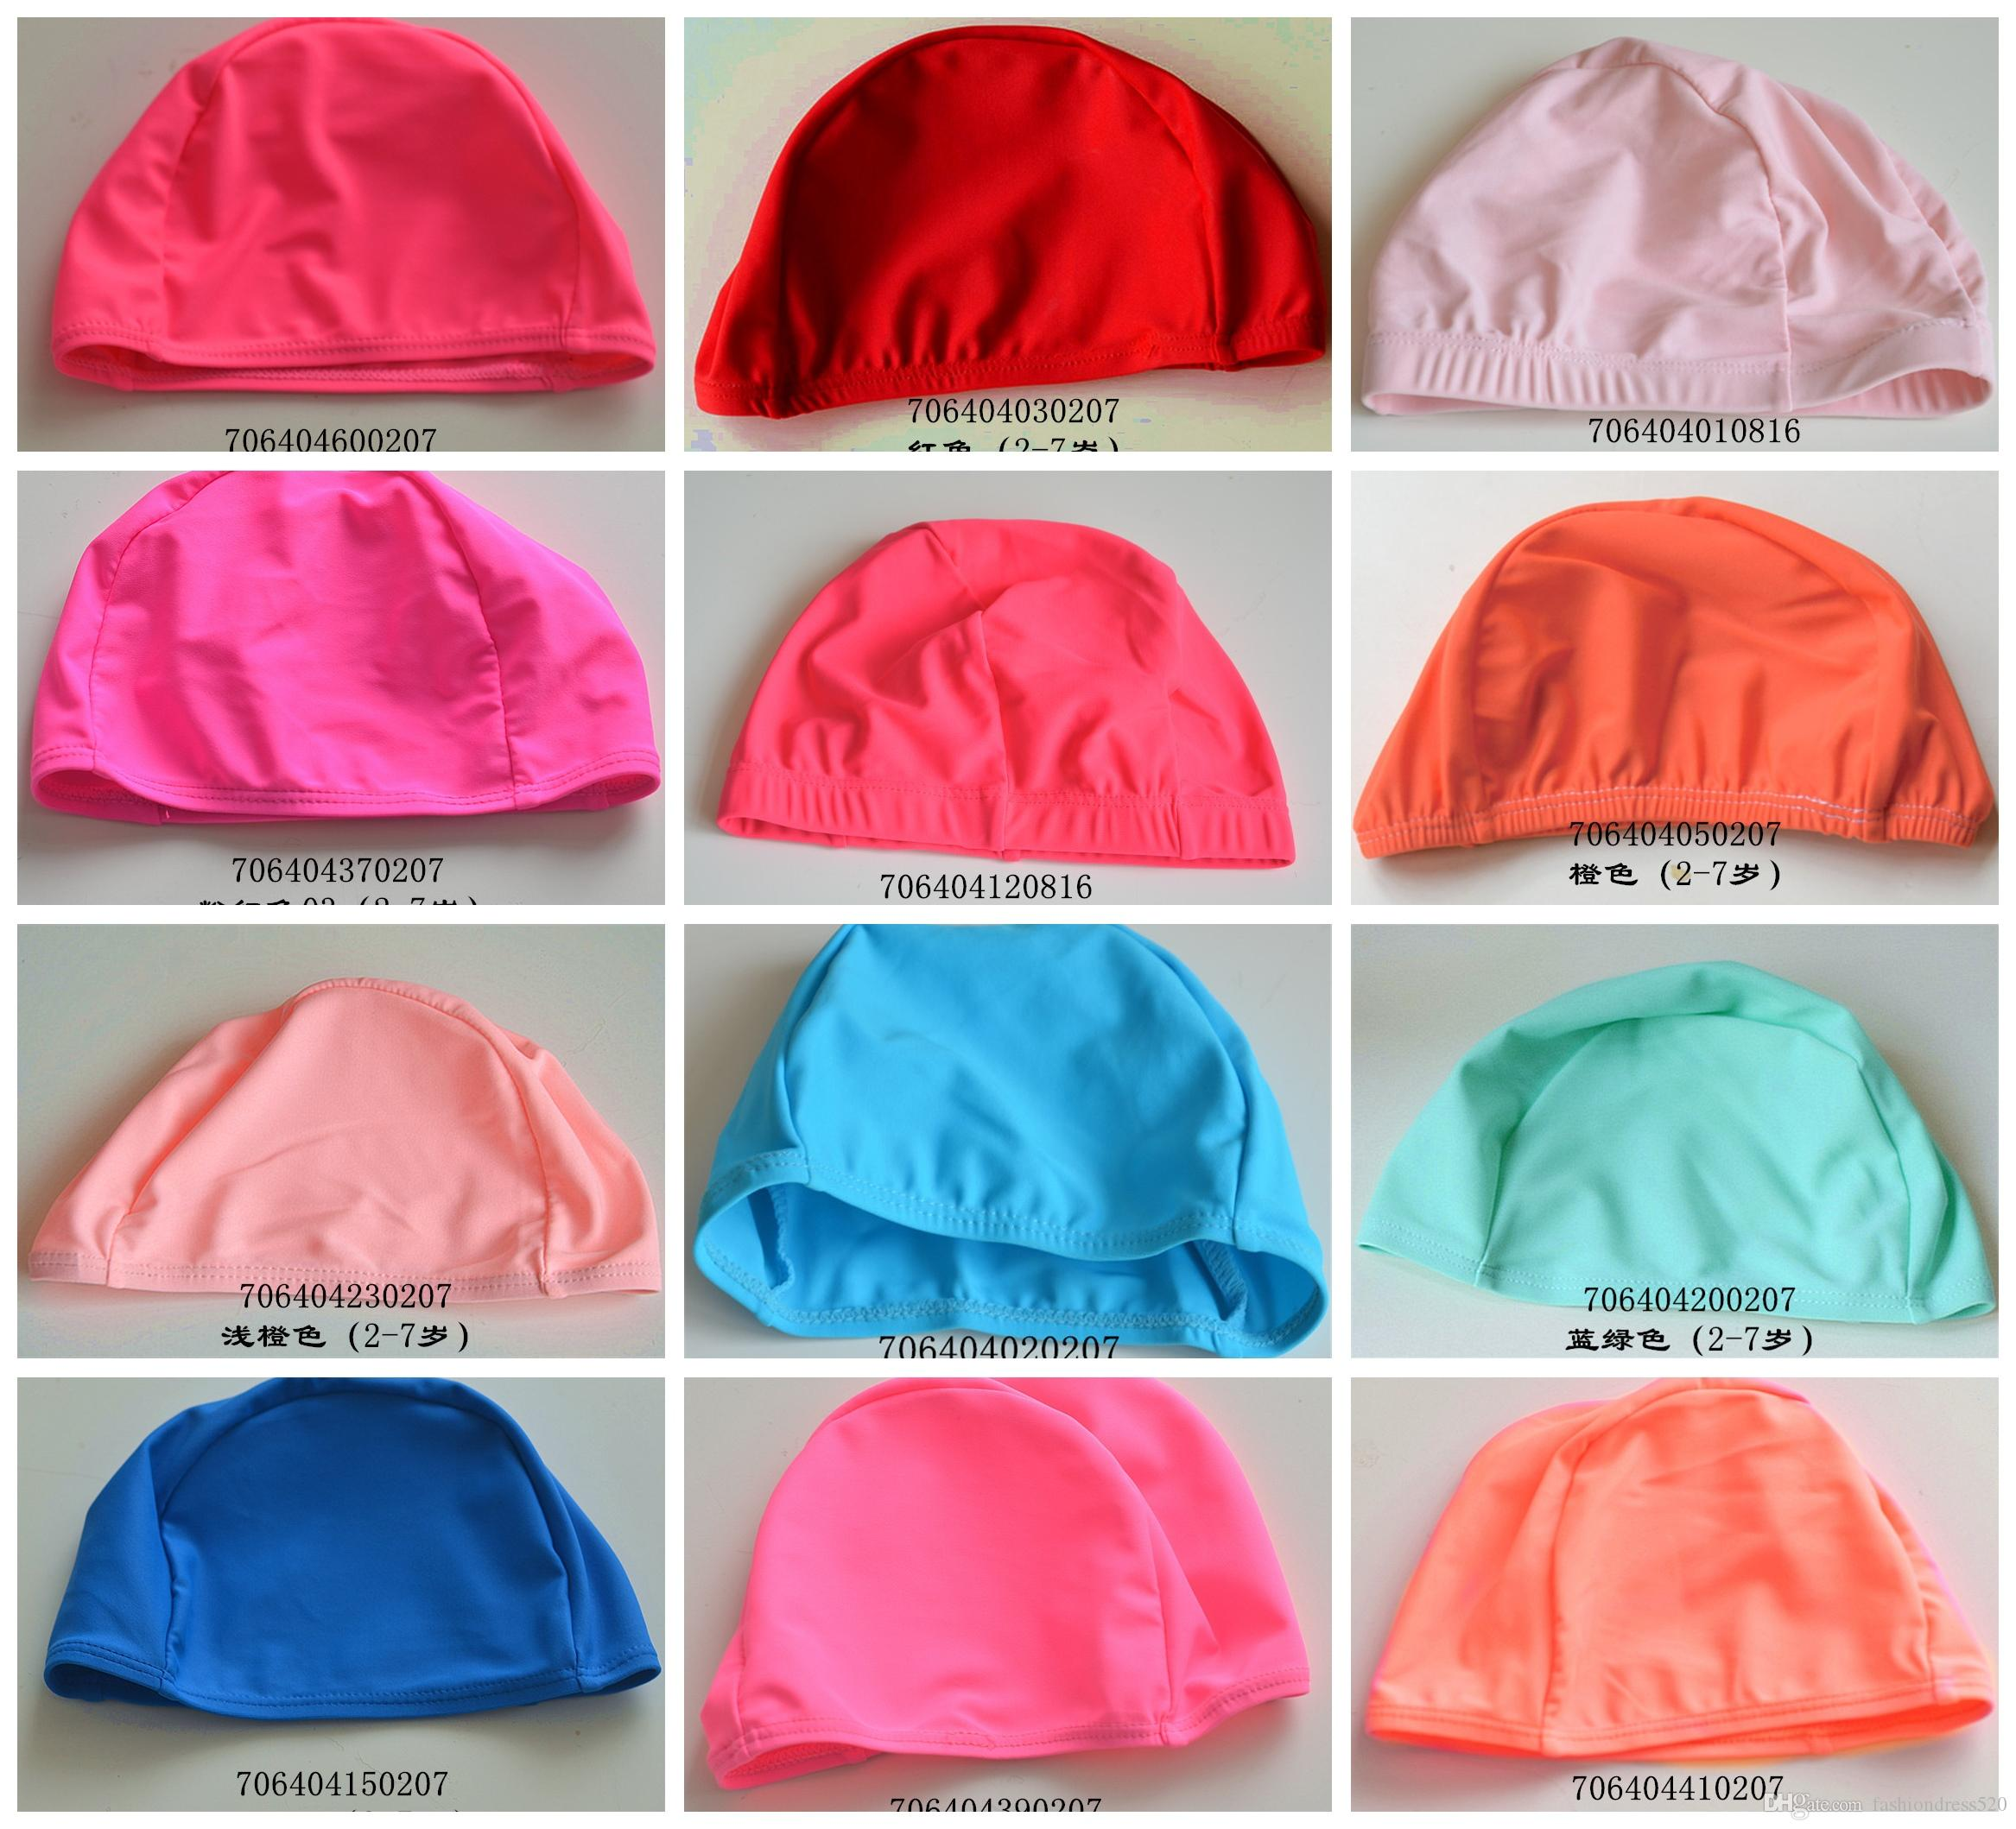 Maxmessy Random Color Swimming Caps Free Size Bathing Cap Protect Ears Hair  Men Women Adults Swim Pool Cap Hat DHL UK 2019 From Fashiondress520 9ee62d942dd0